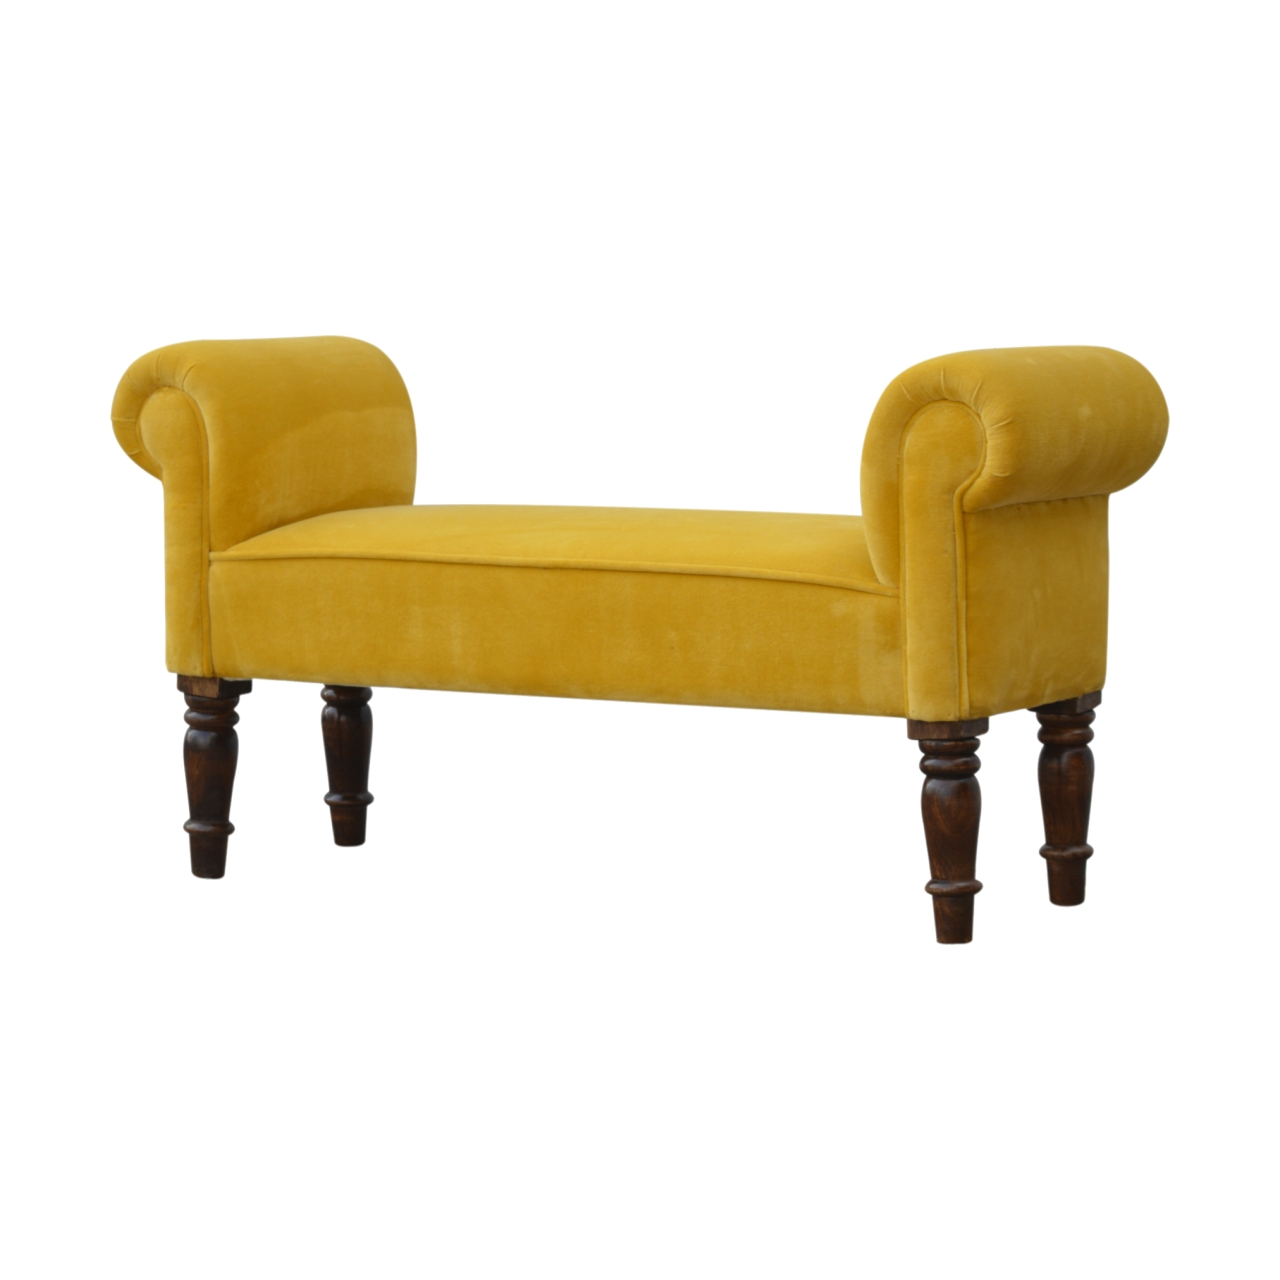 The Sofa Throw Company Ochre Mustard Velvet Bench